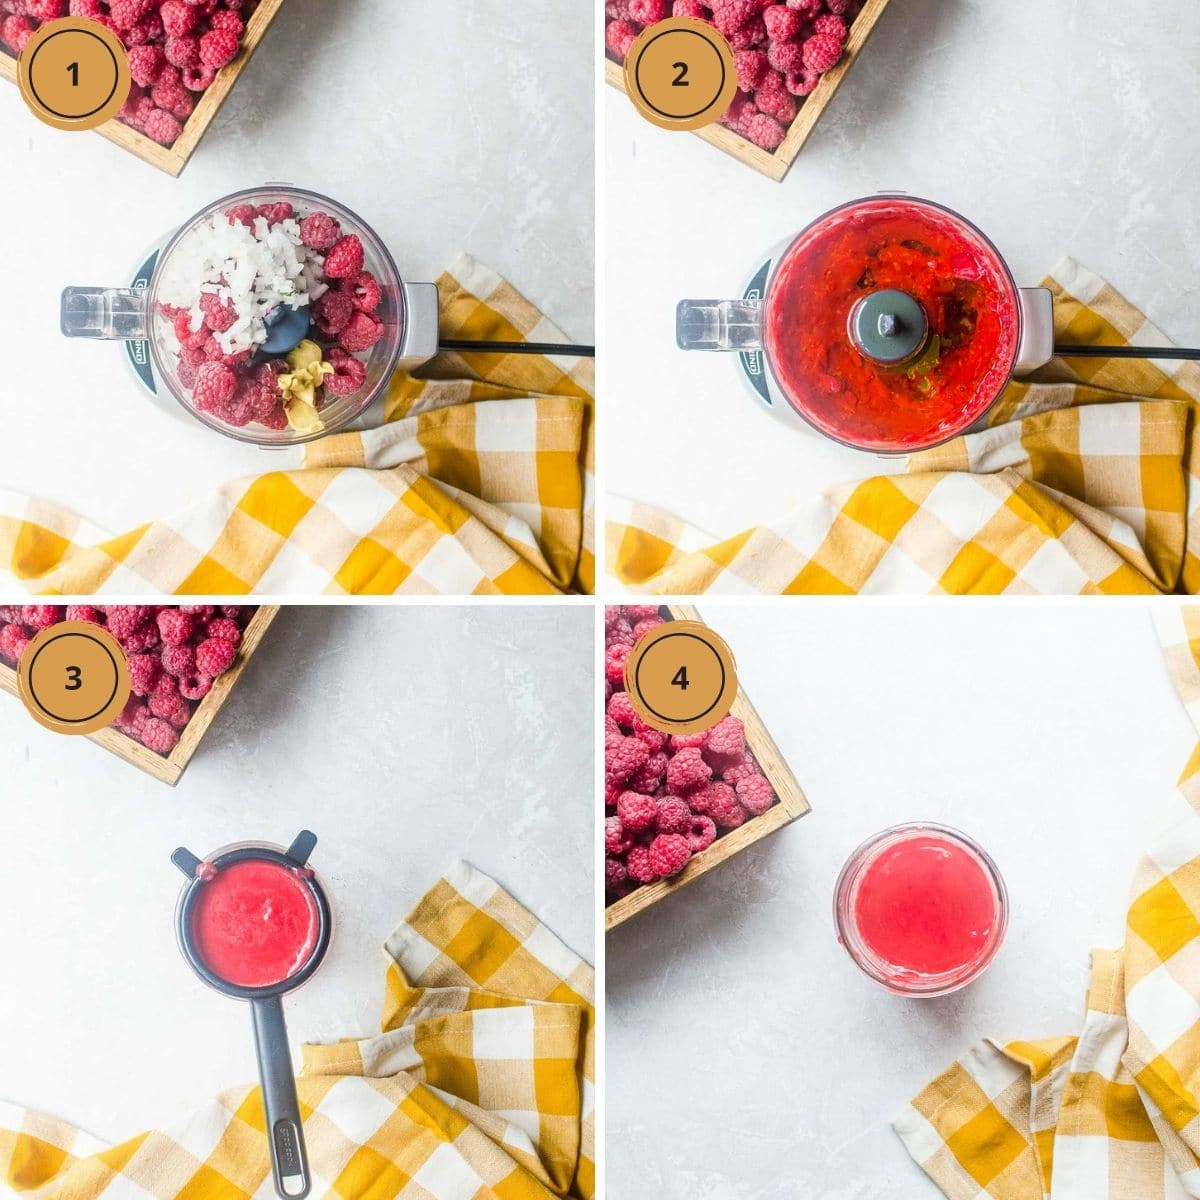 Four images showing the steps to make raspberry vinaigrette dressing.